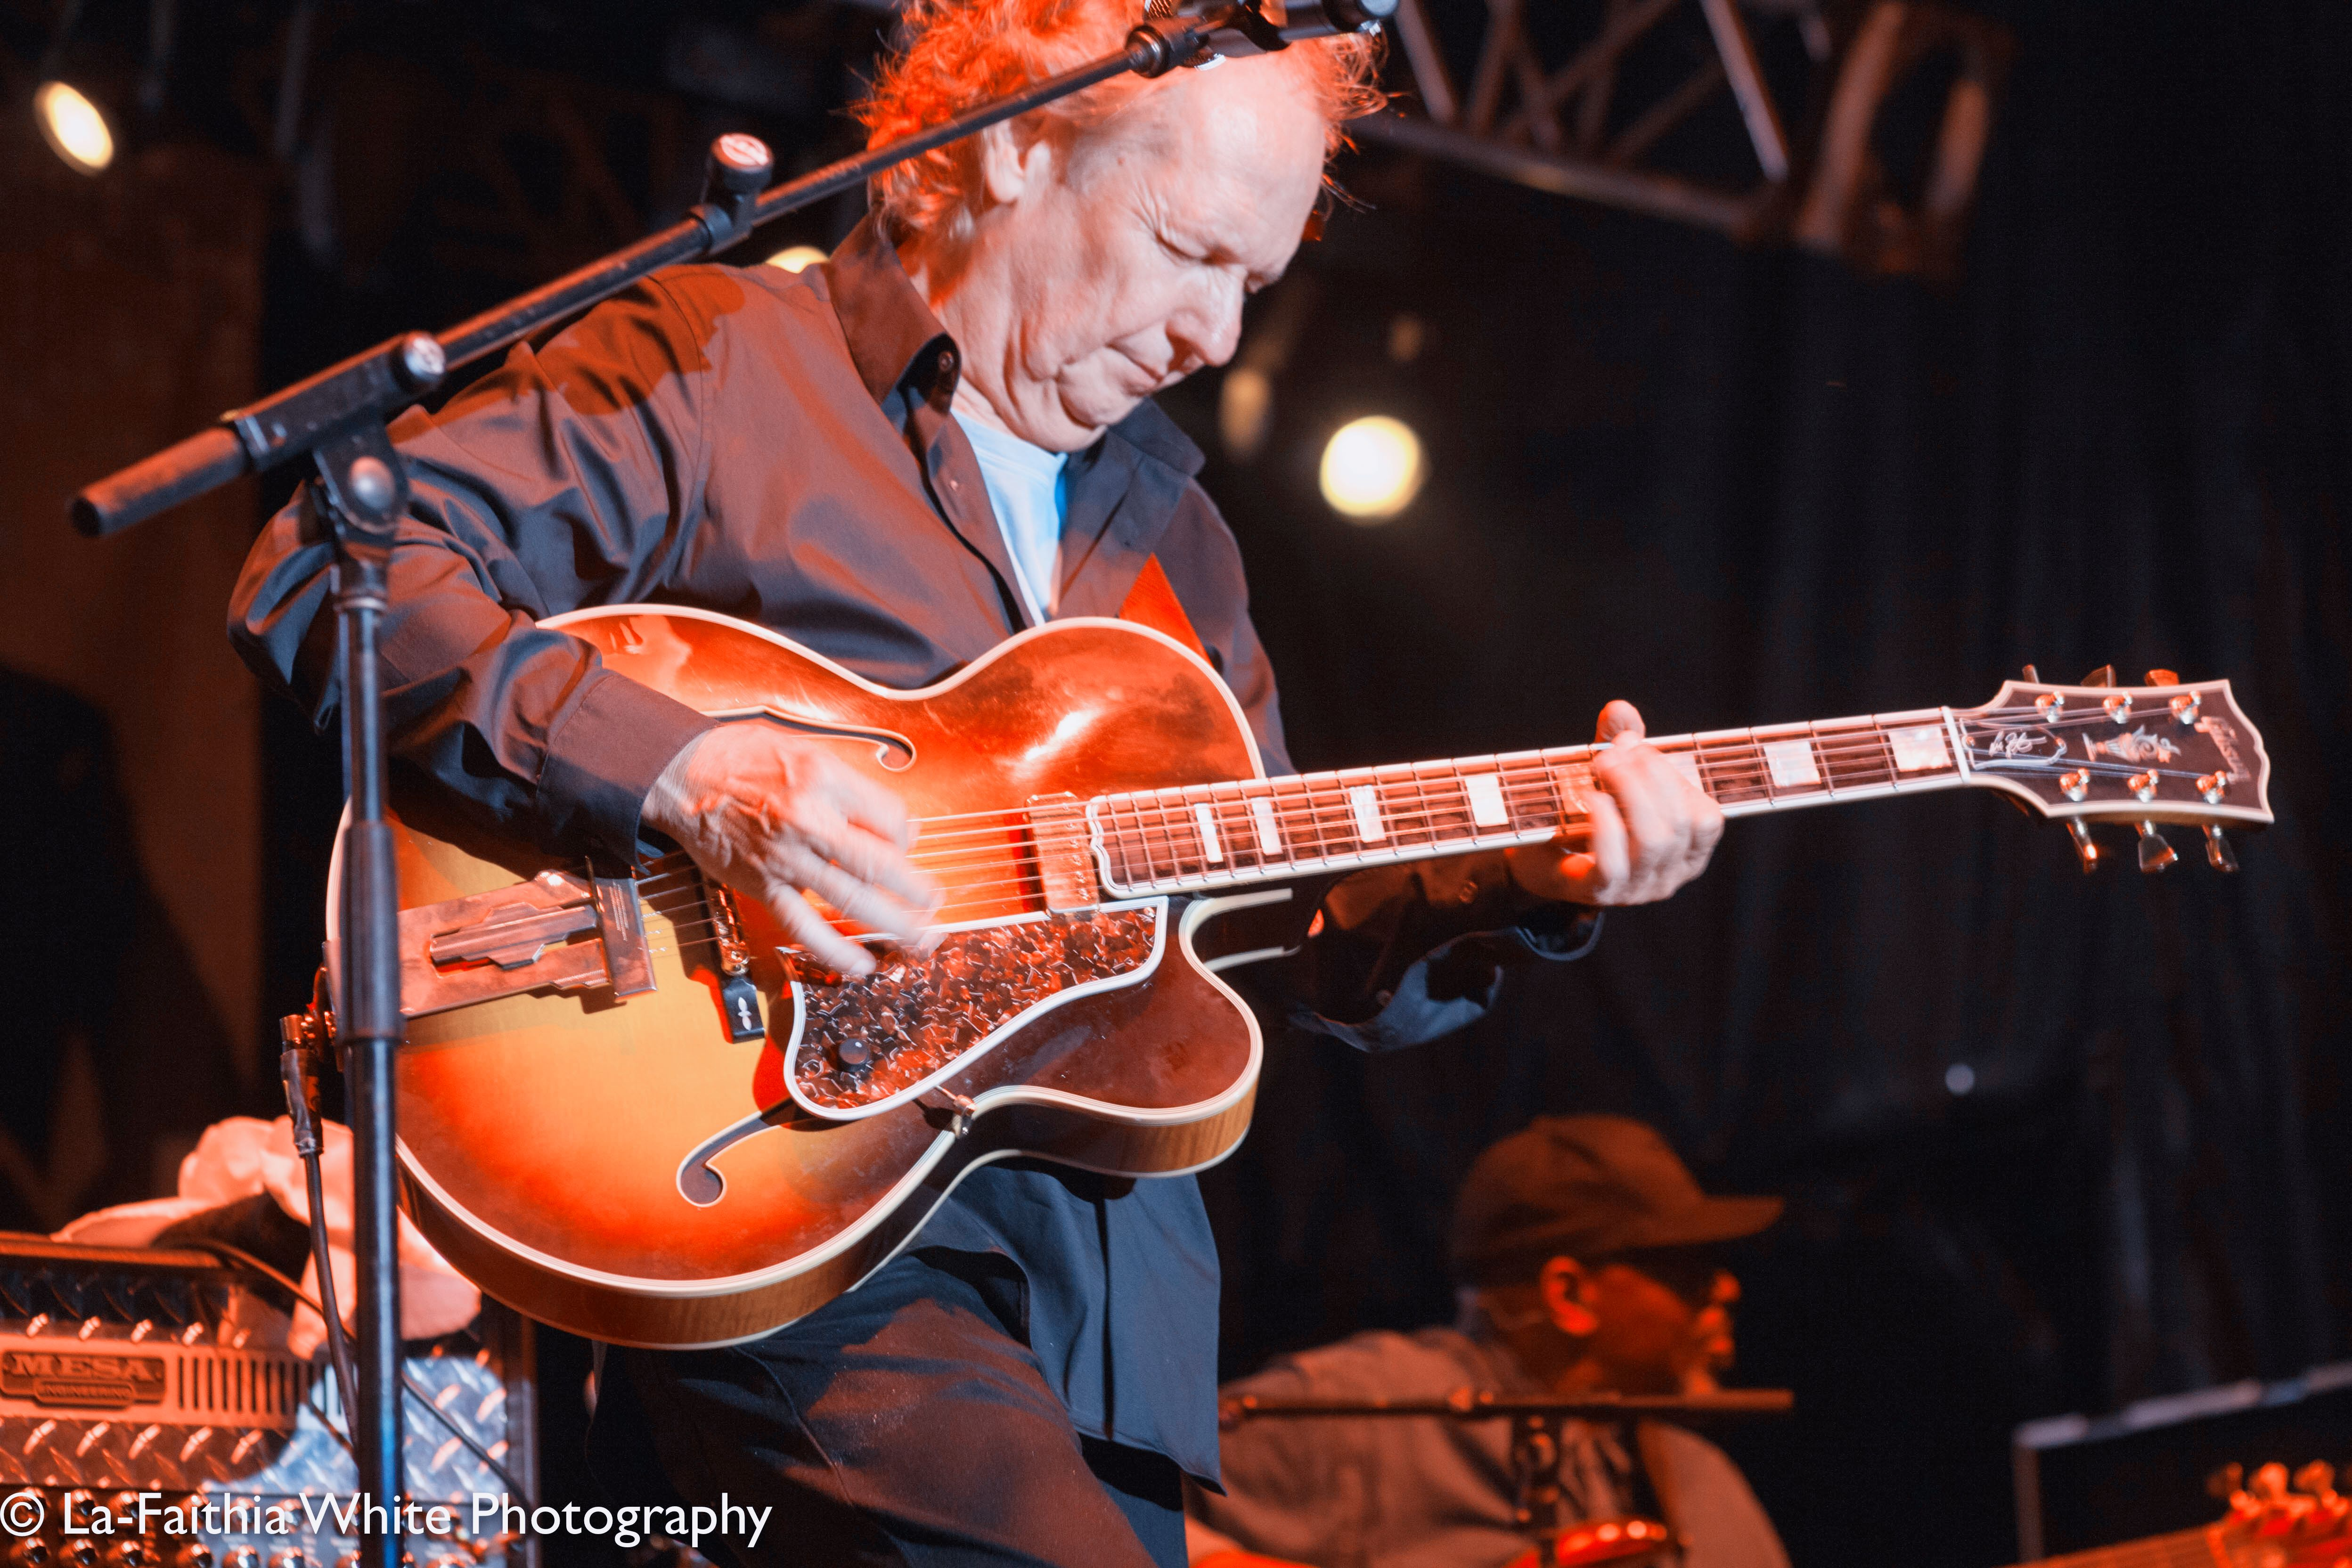 Lee Ritenour At The 8th Annual John Coltrane International Jazz And Blues Festival